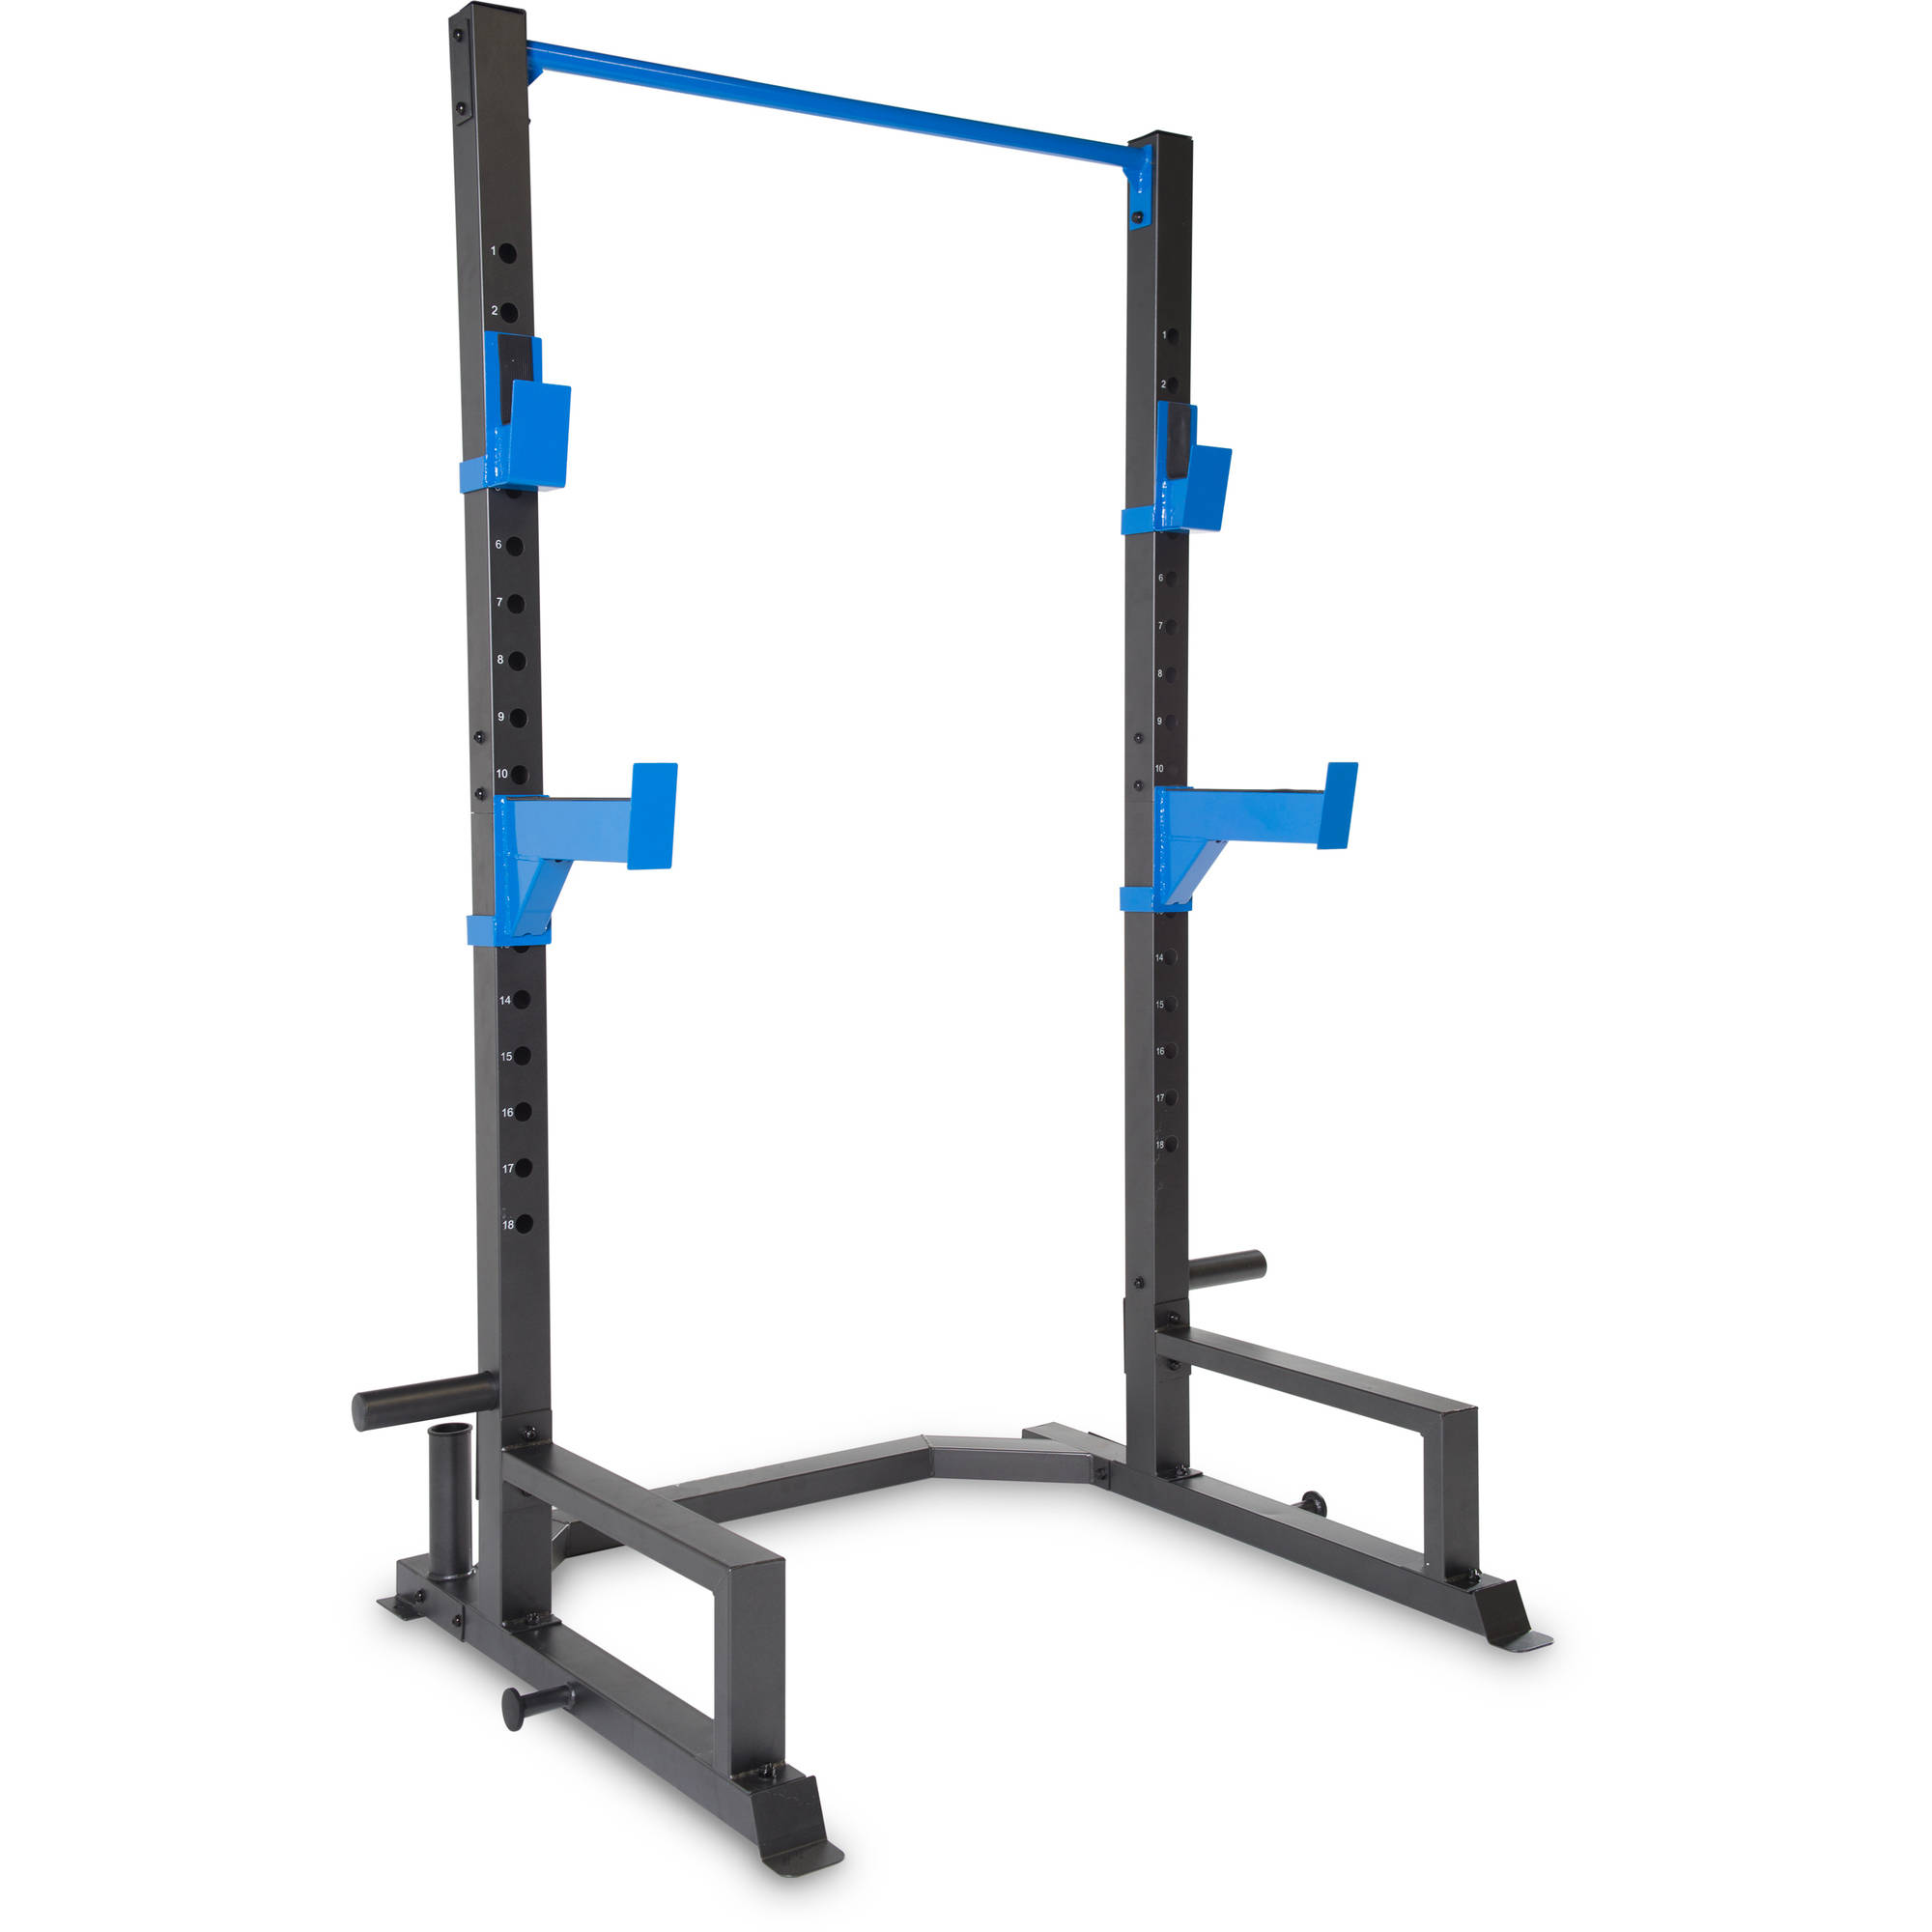 Use Functional Fitness Equipment for Best Results